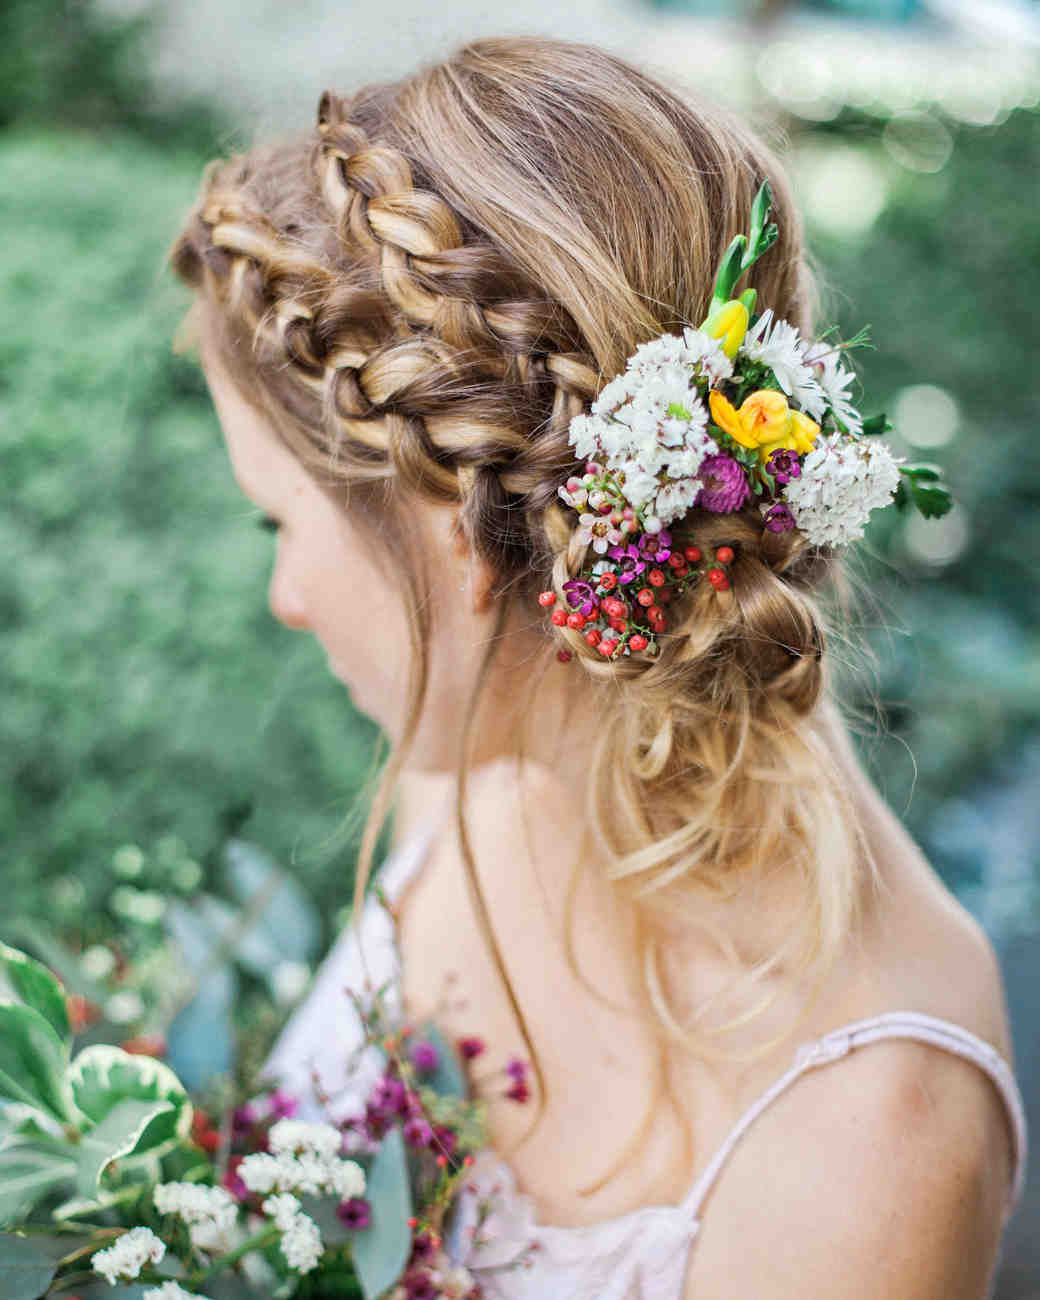 Wedding Hairstyles With Box Braids: 10 Ways To Upgrade The Wedding Braid